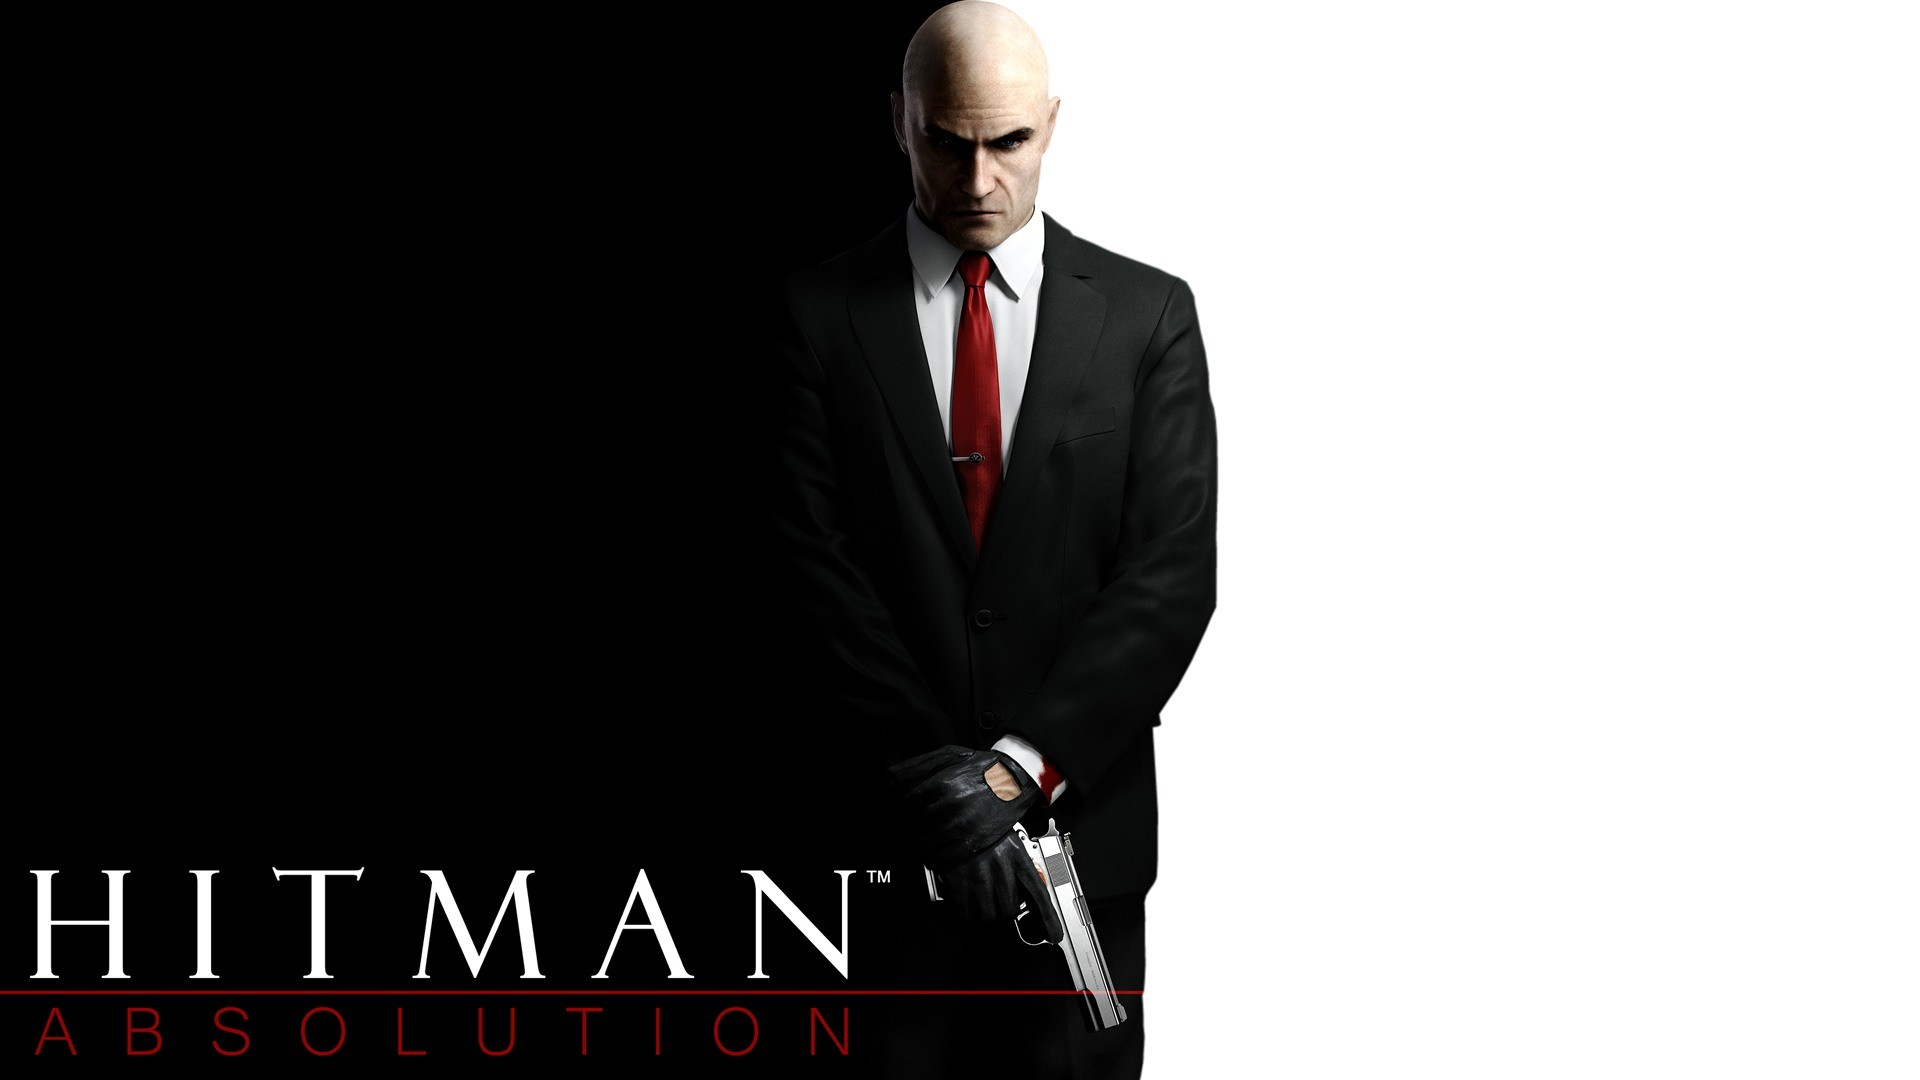 World Hero HitMan Best HD Walllpapers and Backgrounds is waiting for you  https://itunes.apple.com/us/app/hd-wallpapers-backgrounds/id401820288?mt=8  …